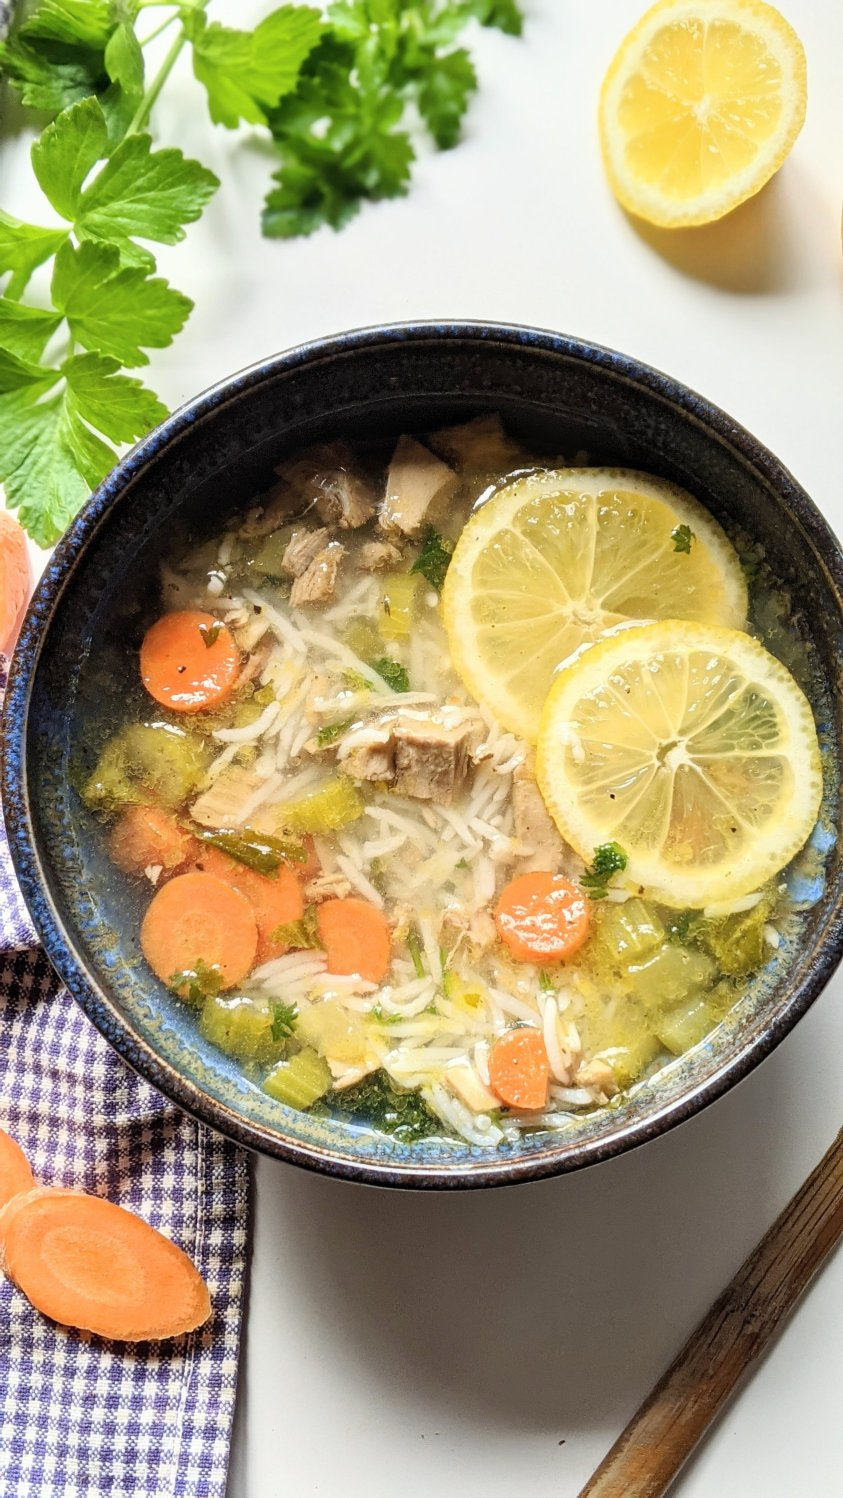 lemon turkey rice soup recipe with leftover thanksgiving turkey leftovers soup gluten free dairy free one pot turkey soup recipe healthy simple inexpensive no waste lunch or dinner ideas